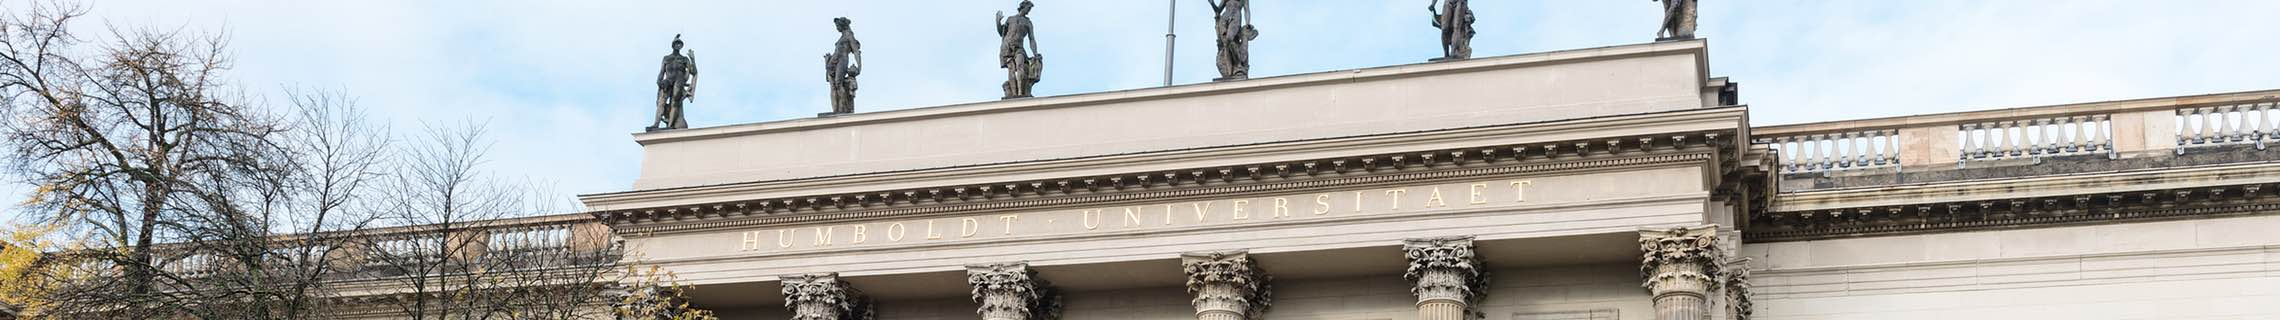 Header image: facade of Humboldt-Universität zu Berlin